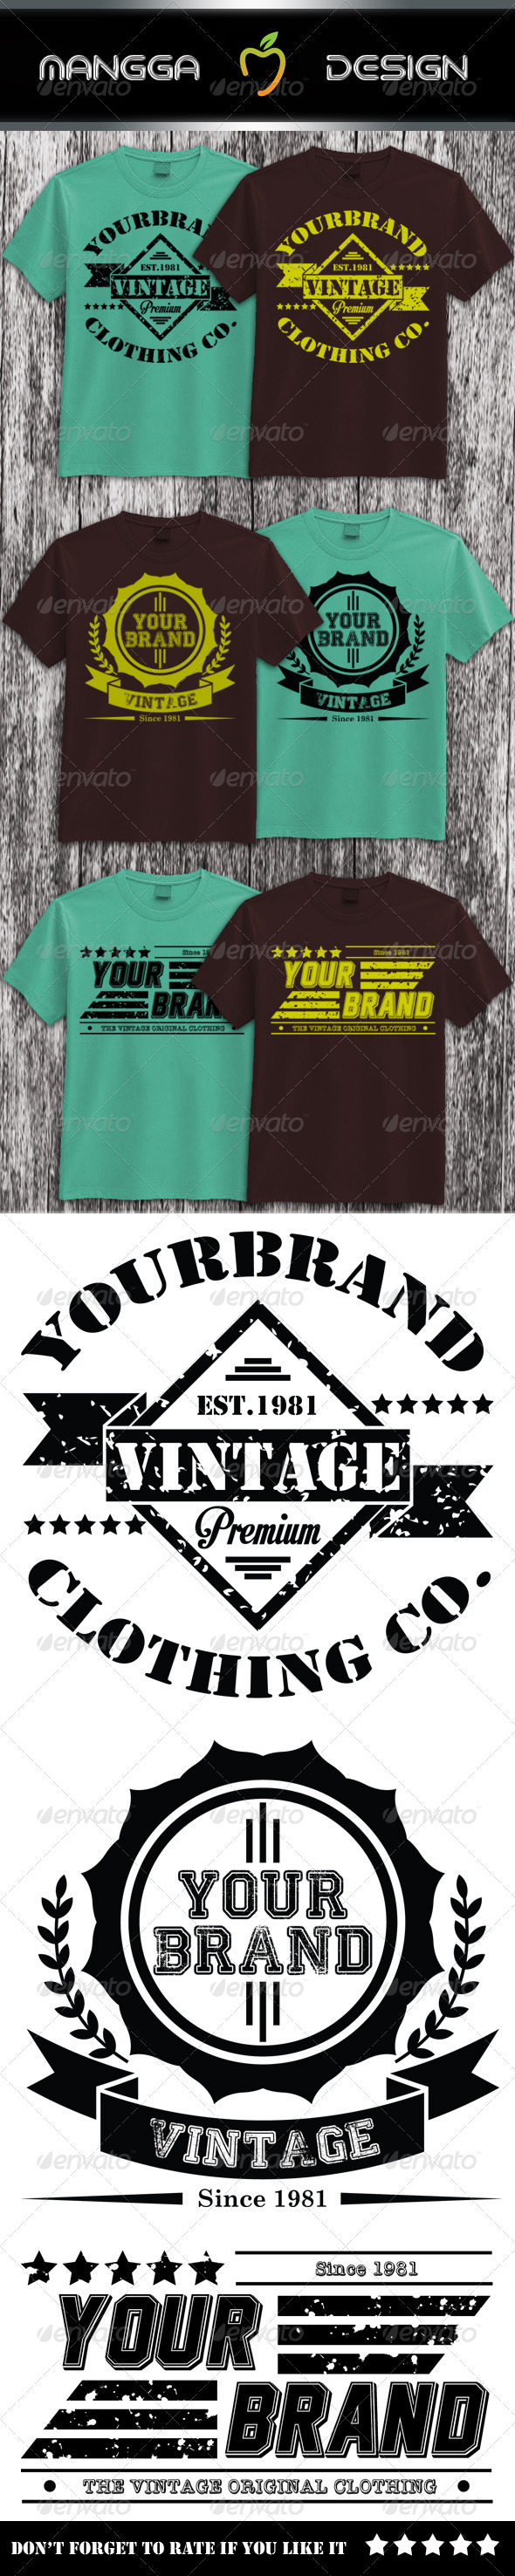 GraphicRiver 3 Vintage T-shirt 8257550